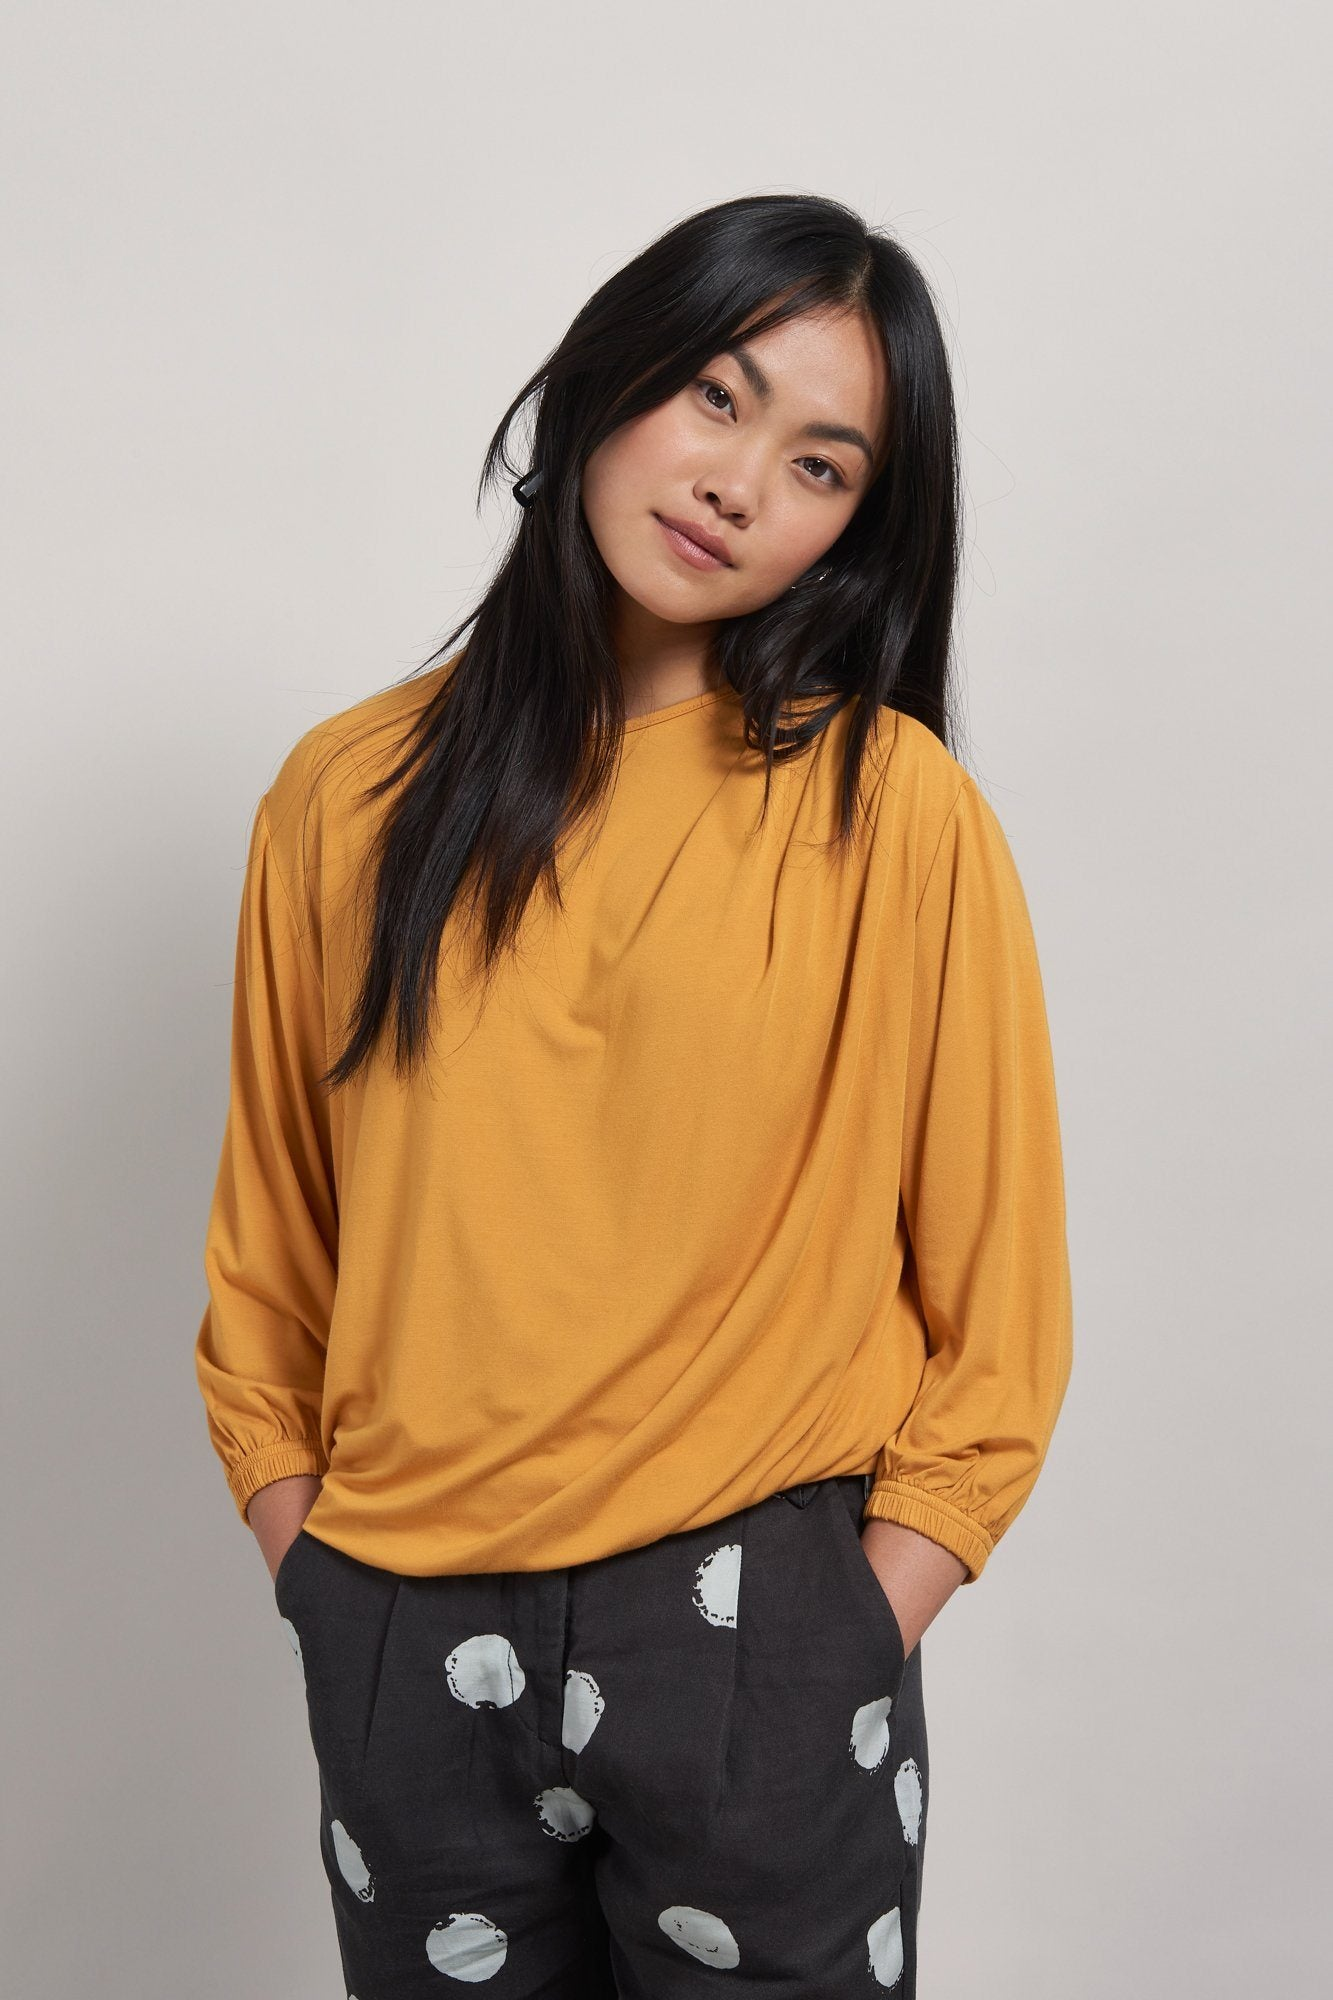 DRIFT Bamboo Drape Top Gold - Komodo Fashion